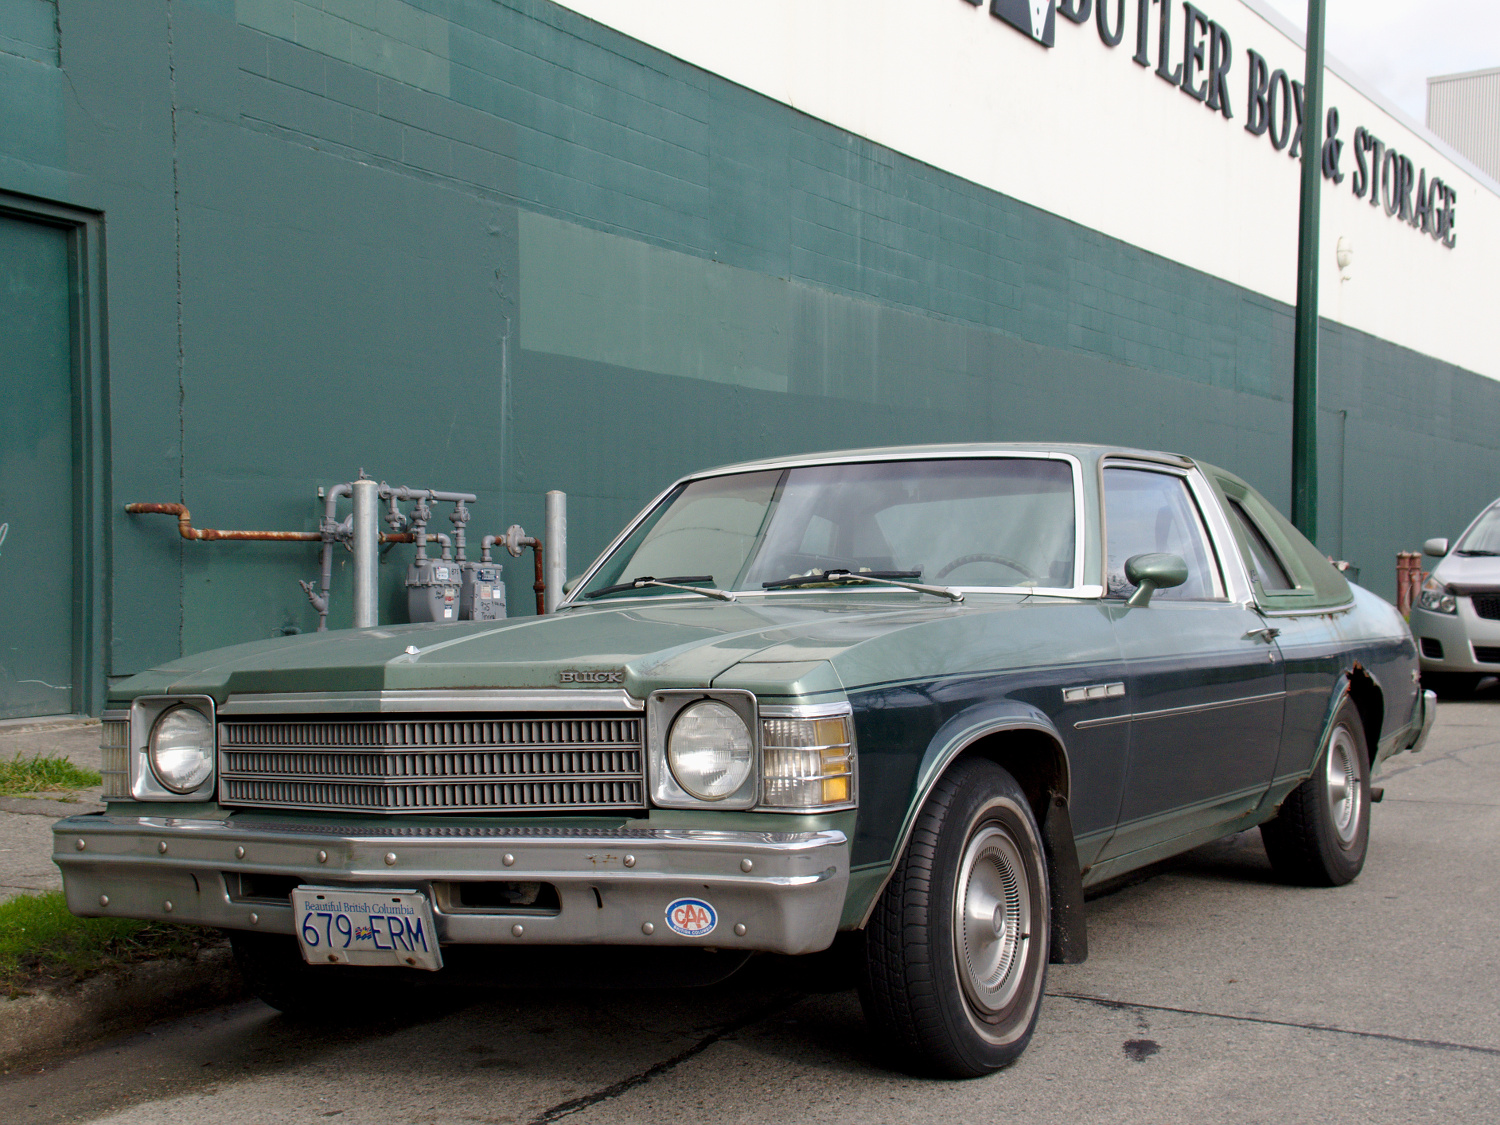 old parked cars vancouver 1978 buick skylark. Black Bedroom Furniture Sets. Home Design Ideas